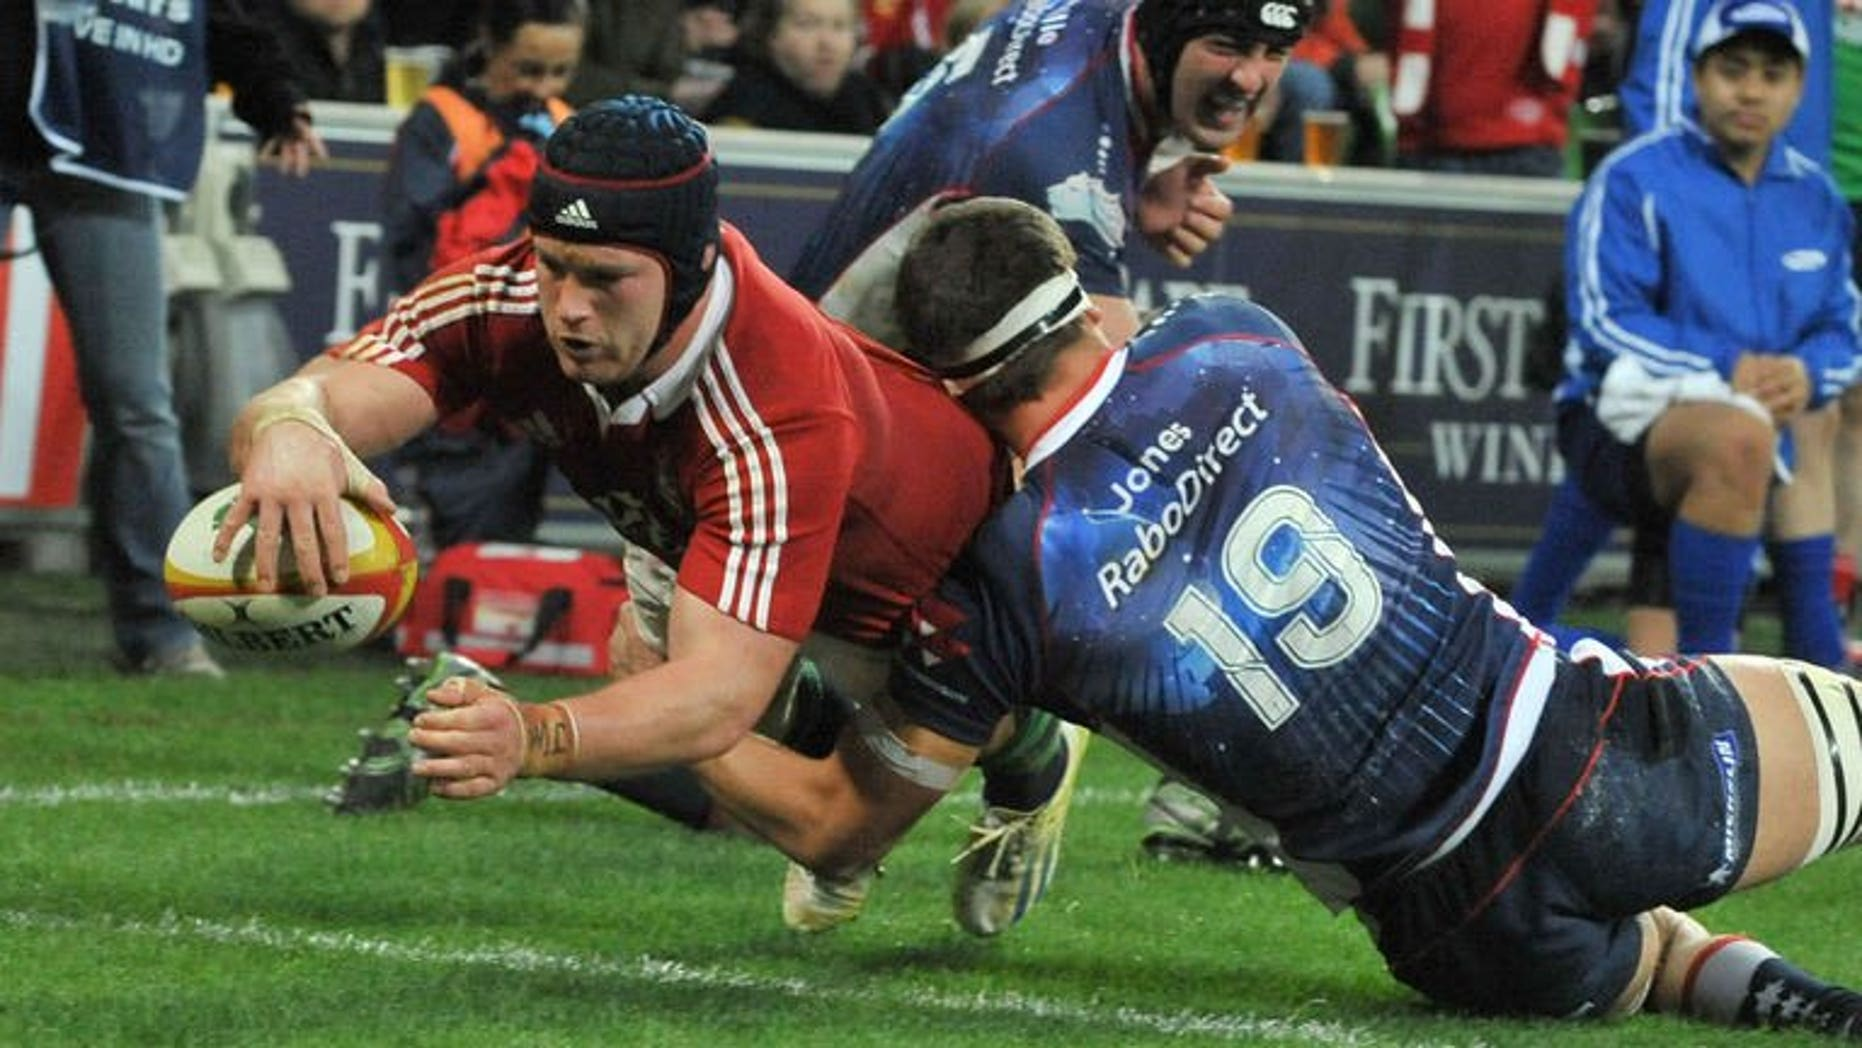 British and Irish Lions' flanker Sean O'Brien (left) dives over the try line to score a try against the Melbourne Rebels on June 25, 2013. The Lions scored five tries to beat the Melbourne Rebels 35-0 in their tour game in Melbourne.